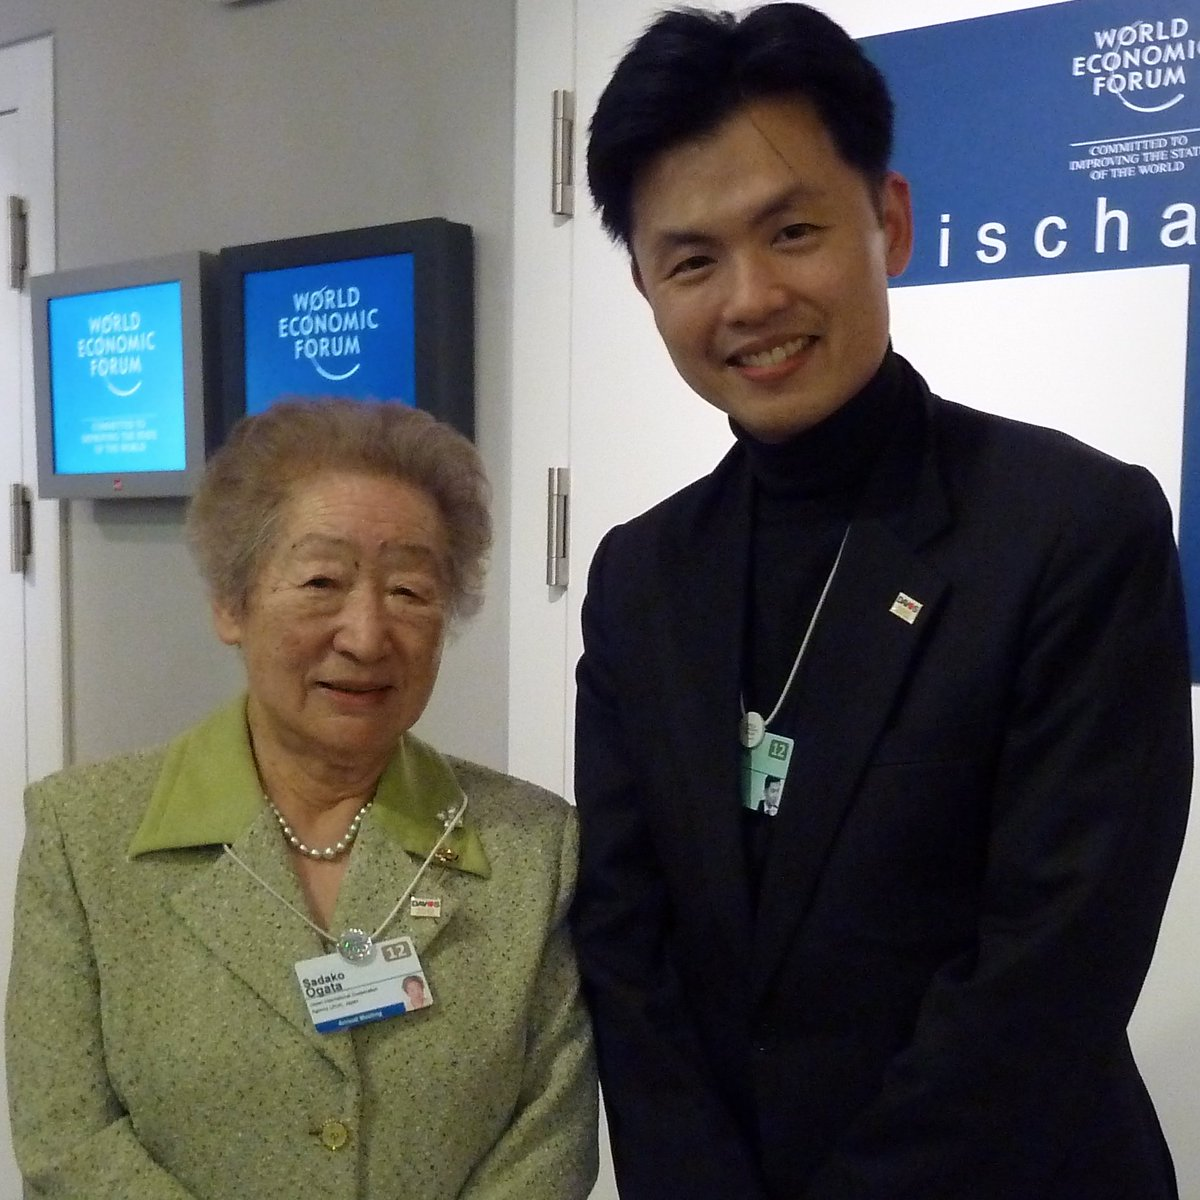 Sadako Ogata, one of the people I respect the most in the world, has passed away.  Her tireless work for refugees and those lacking human security was an inspiration for all of us.  緒方貞子さん、私が最も尊敬する方でした。 とても残念で、悲しいです。 心よりご冥福をお祈り致します。